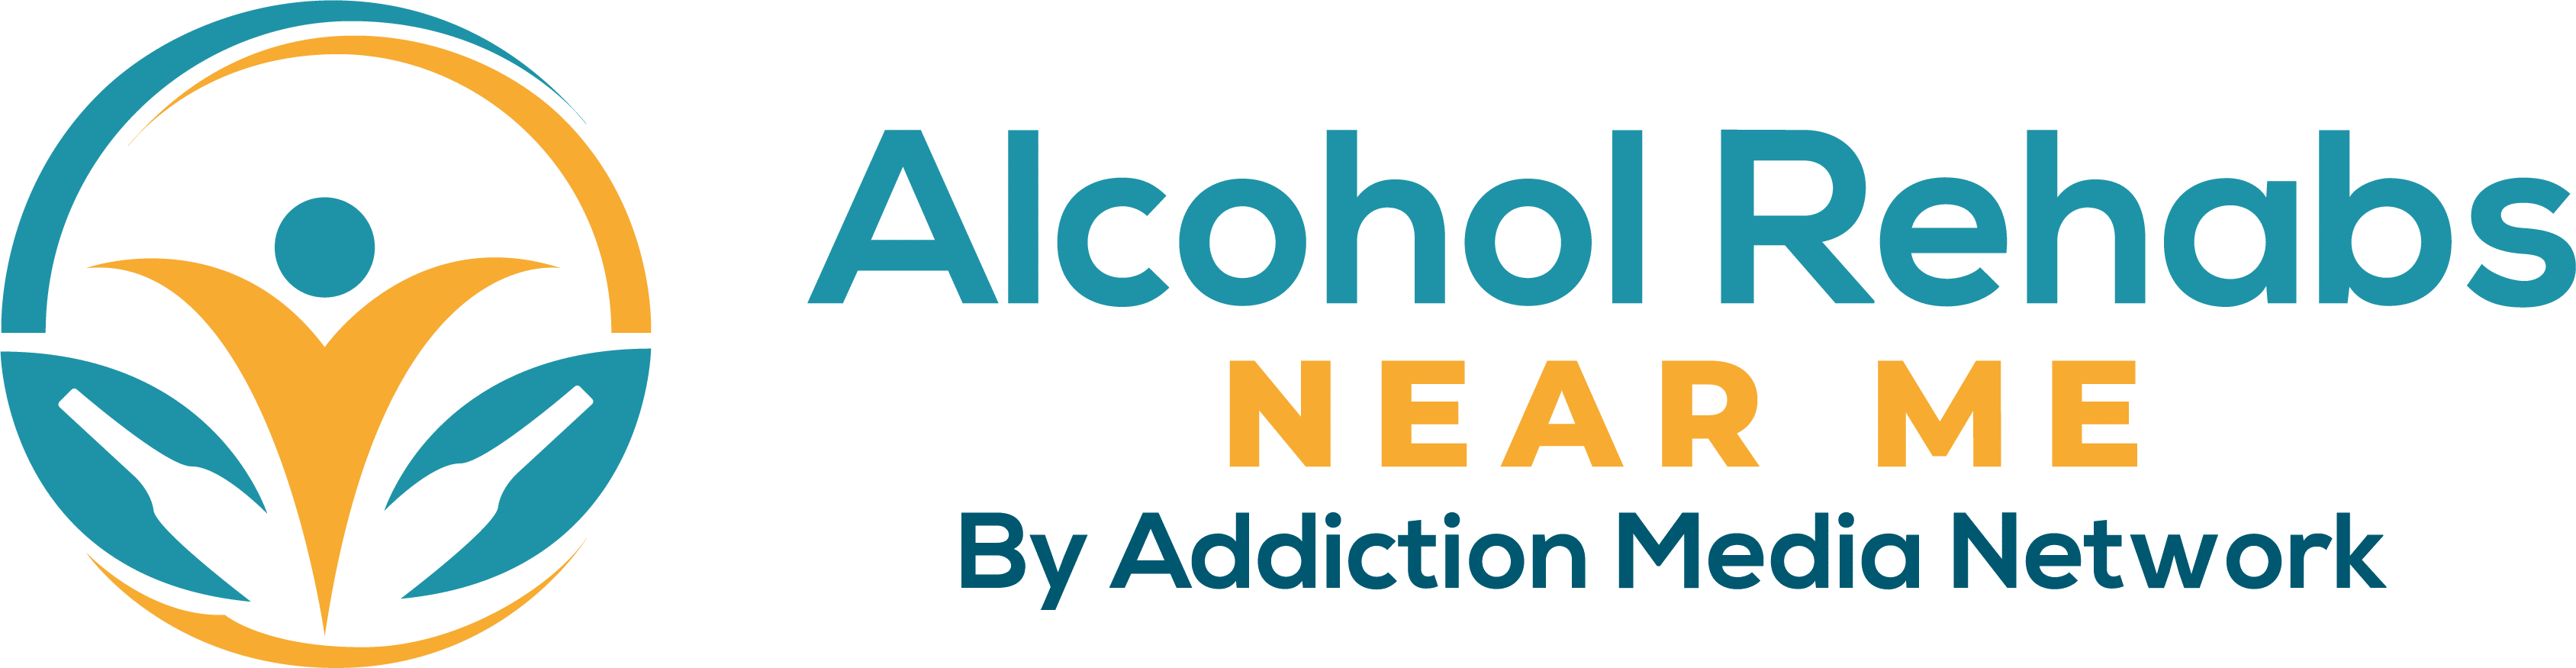 Alcohol Rehab Near Me